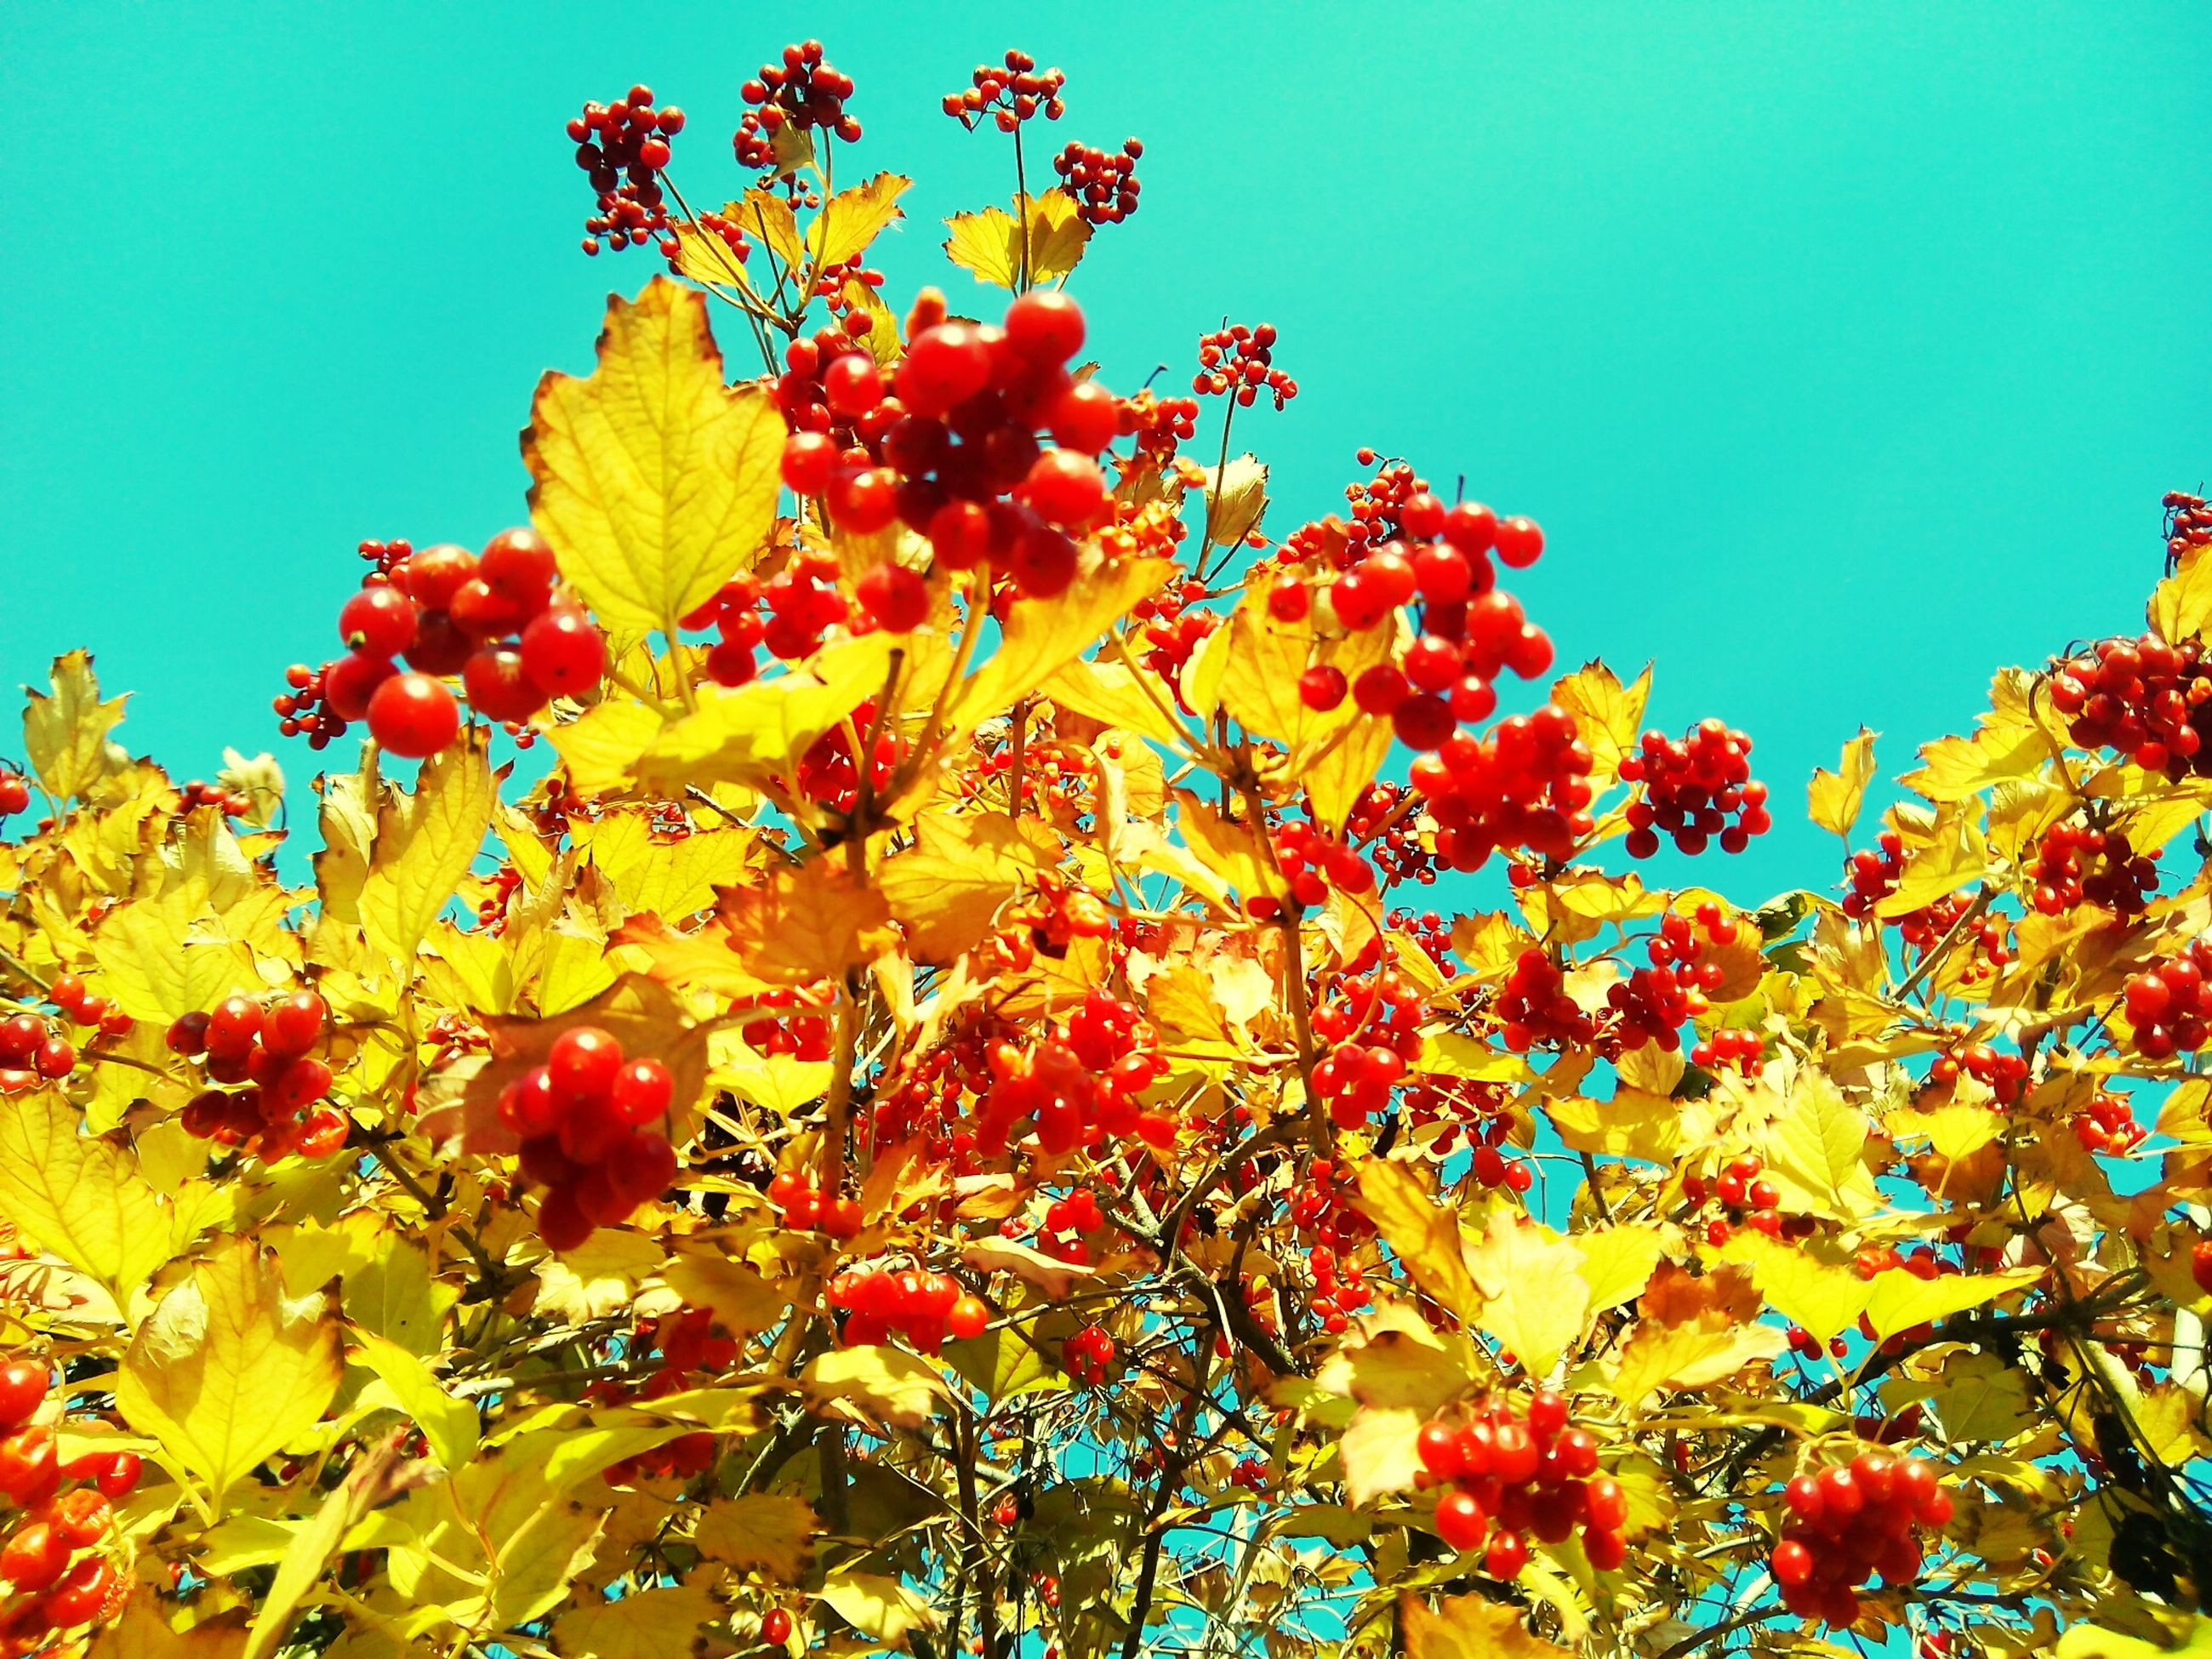 clear sky, low angle view, growth, blue, flower, freshness, red, beauty in nature, tree, nature, branch, fragility, sunlight, day, leaf, vibrant color, season, tranquility, sky, autumn